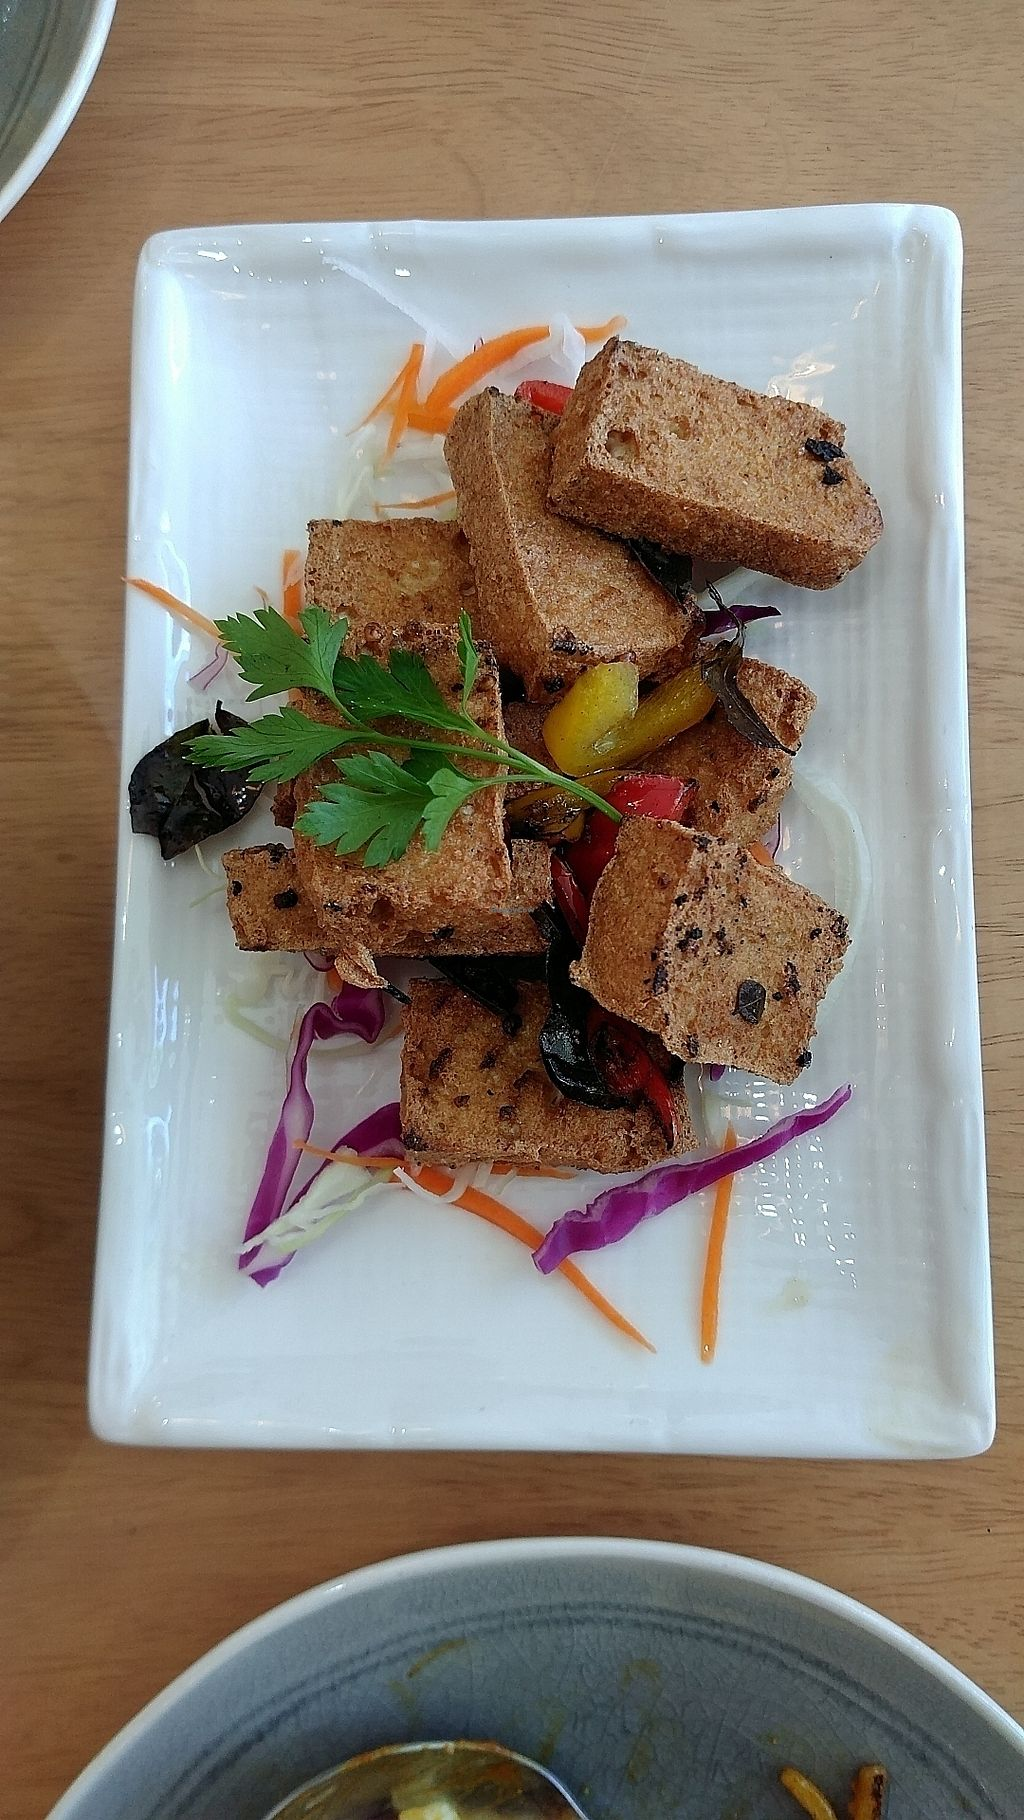 """Photo of Vegieria  by <a href=""""/members/profile/vegelover"""">vegelover</a> <br/>Salt & Pepper Crispy Tofu <br/> February 17, 2018  - <a href='/contact/abuse/image/103413/360196'>Report</a>"""